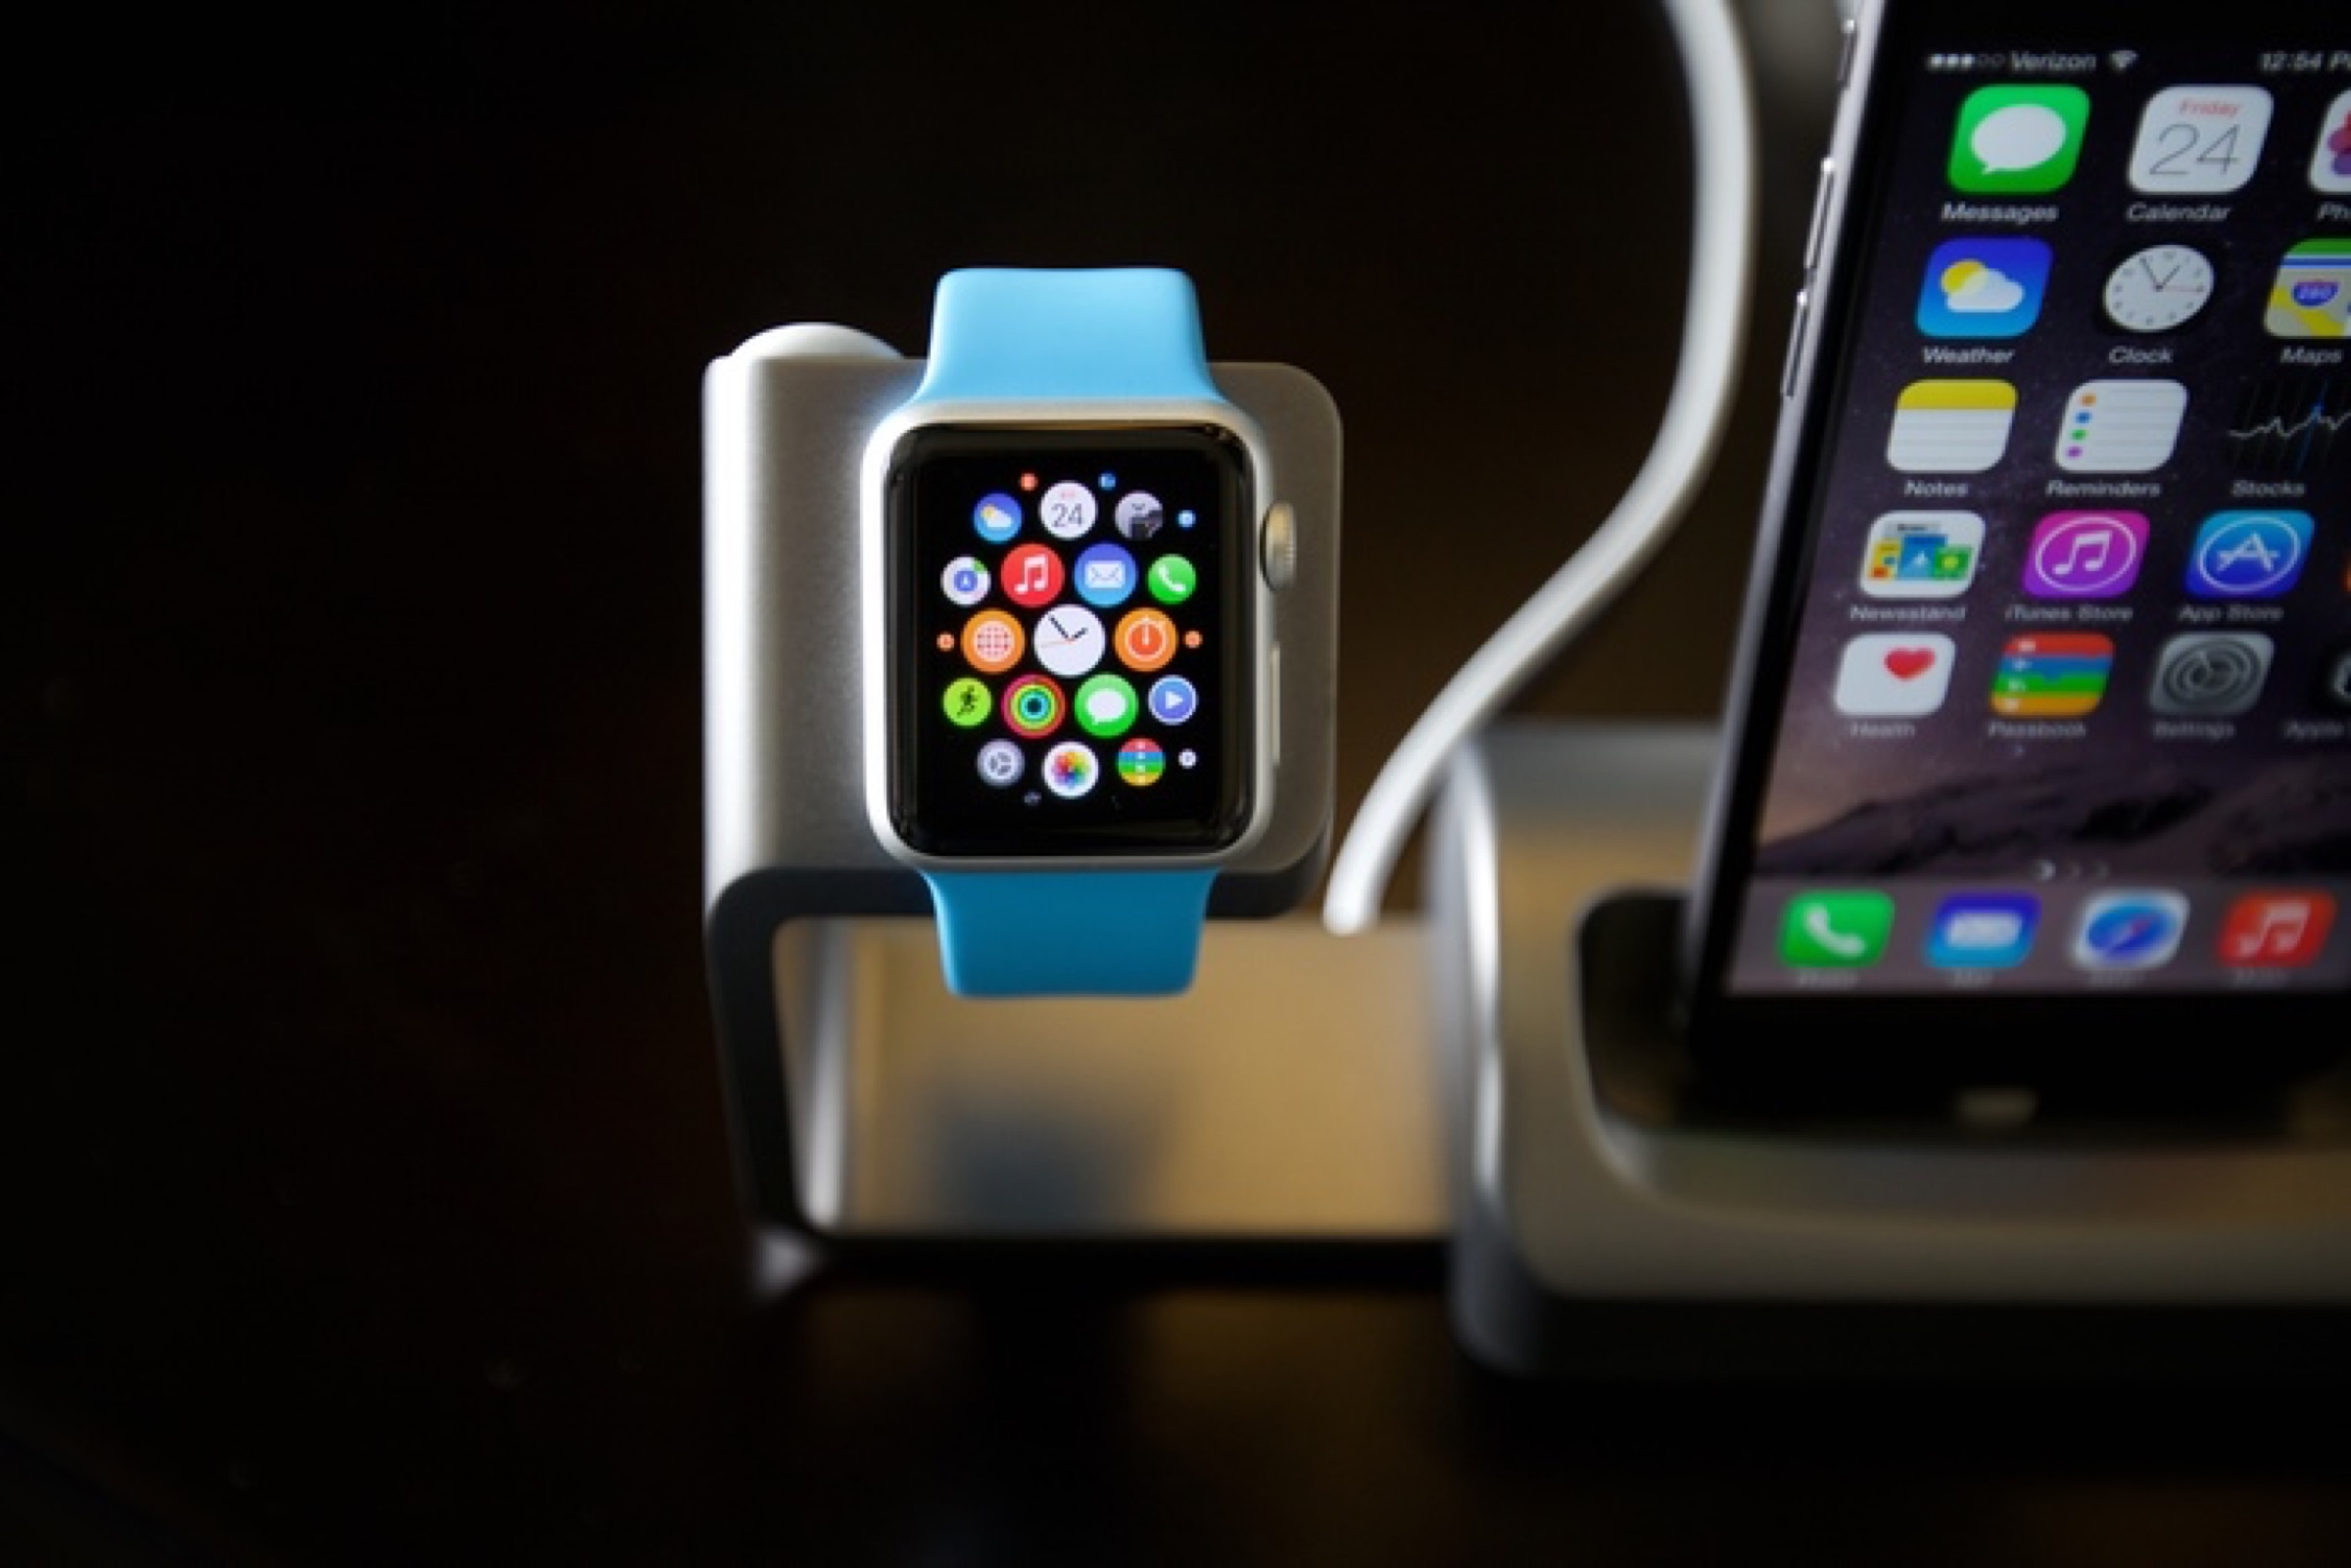 Kickstarted: Duet Dock offers iPhone and Apple Watch owners an elegant charging solution